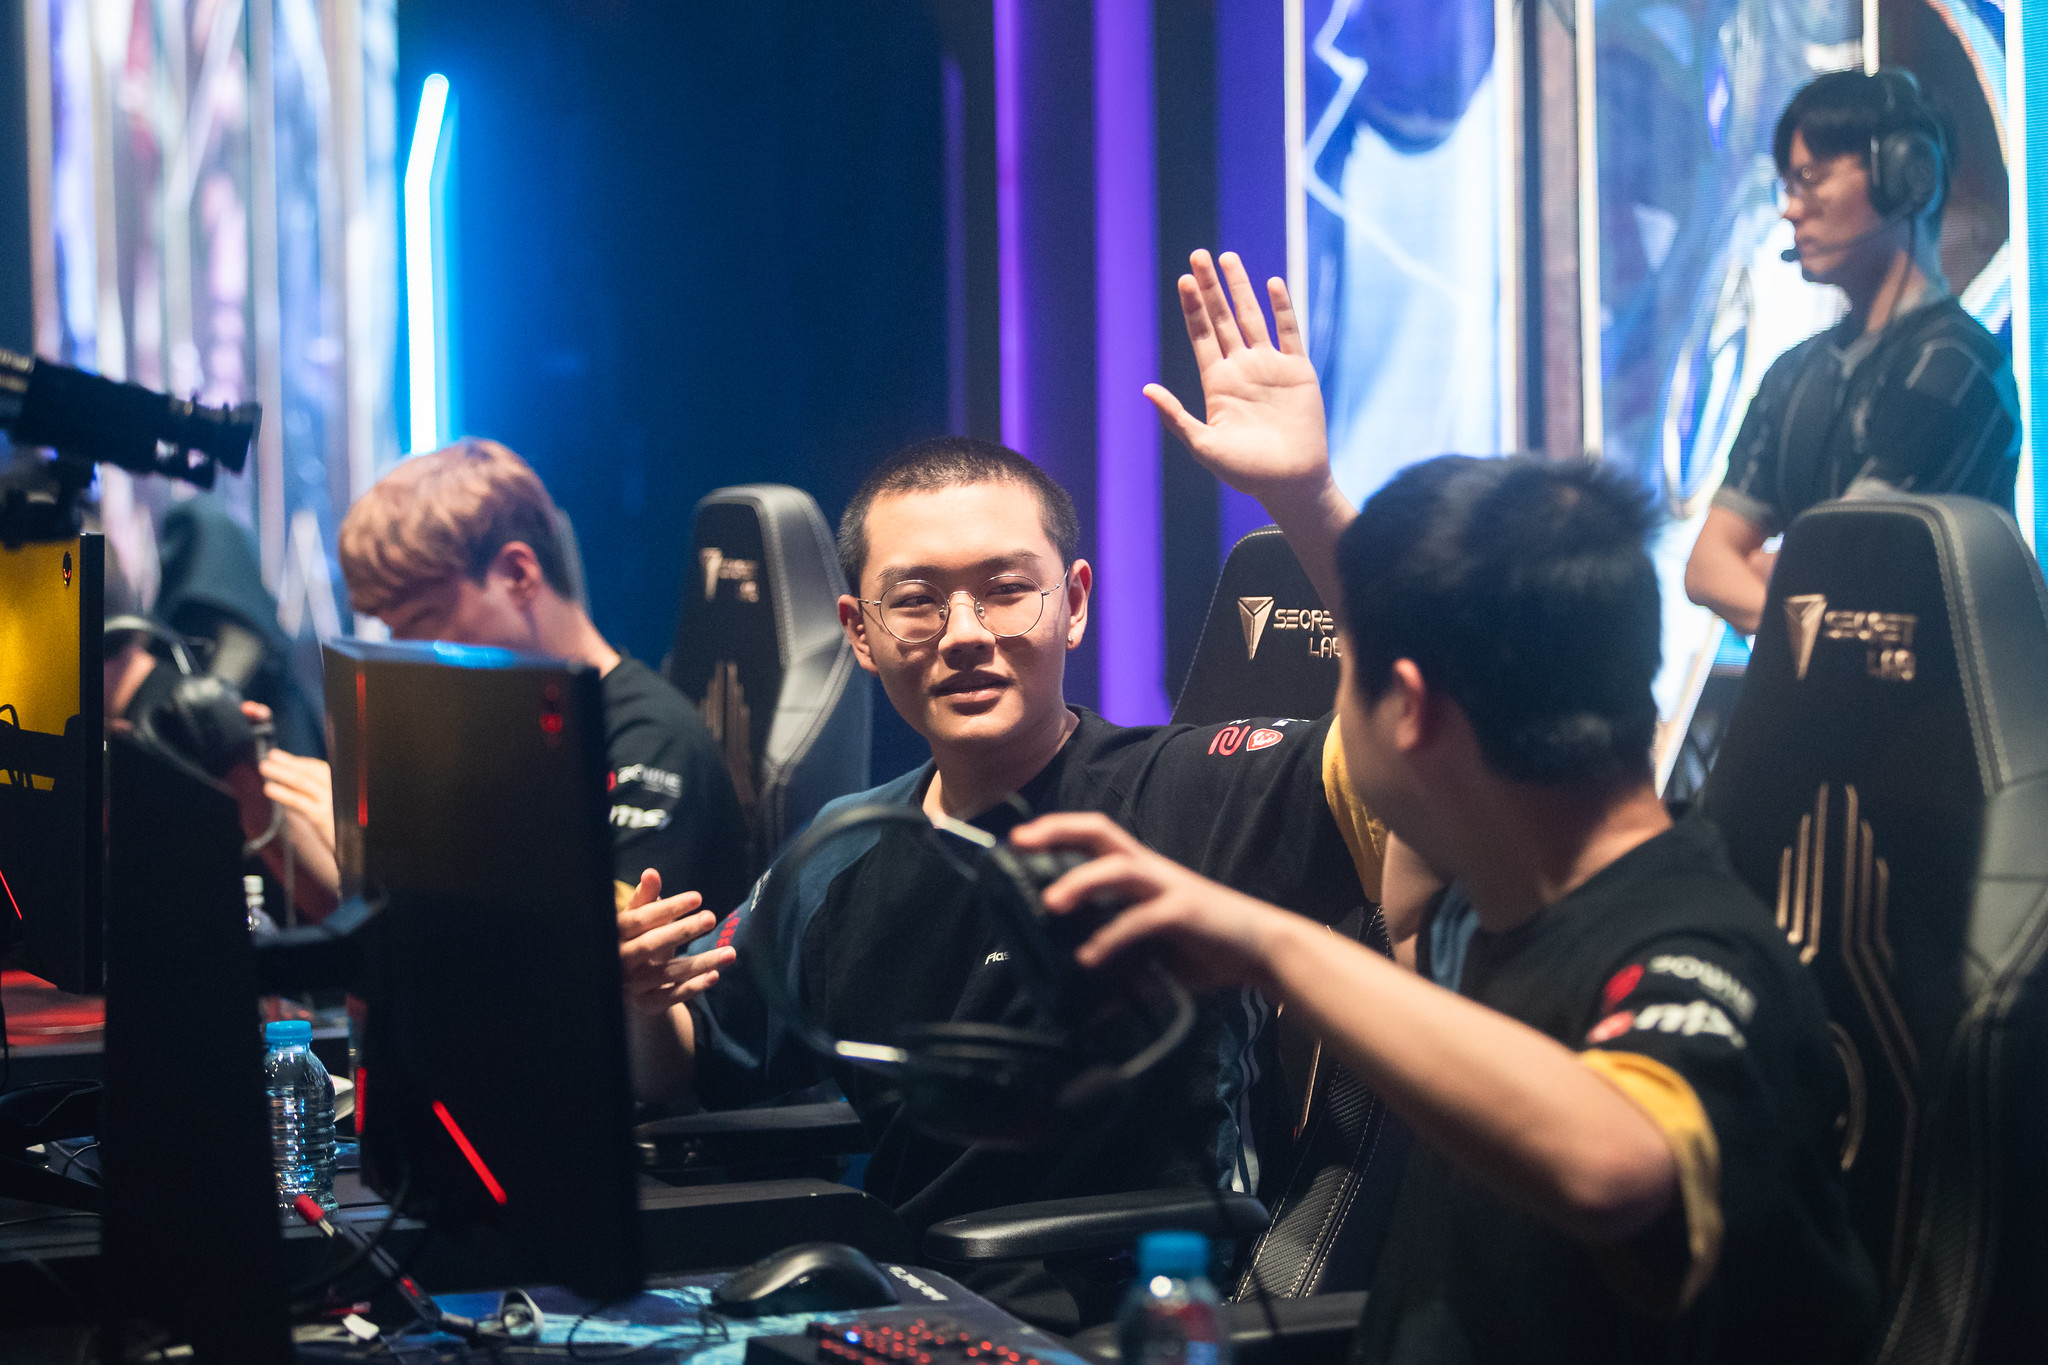 RNG beats eStar, securing fourth place in LPL